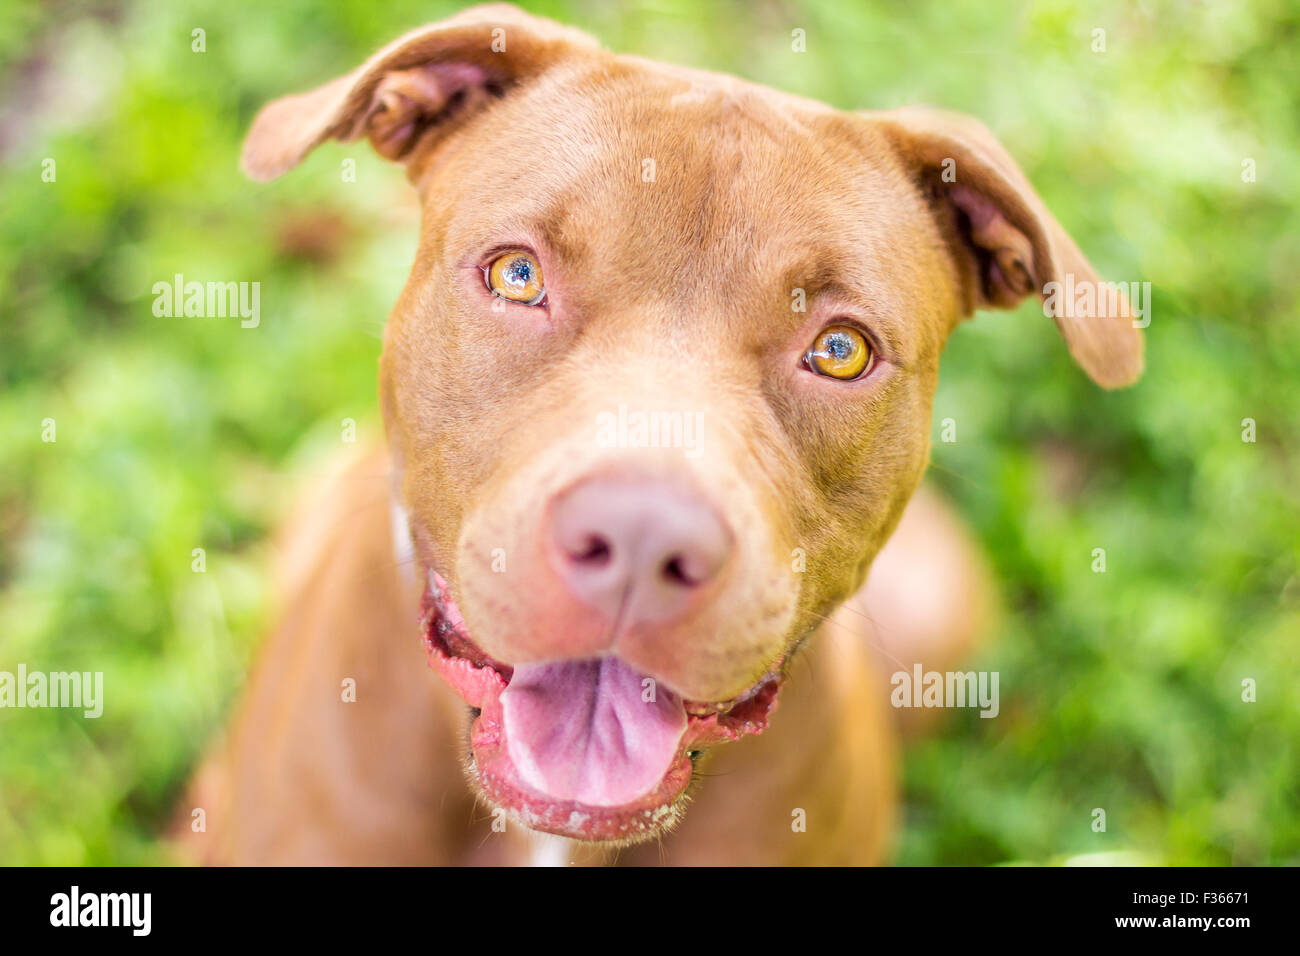 Cute red nose pitbull sitting outside looking up waiting for a training cue - Stock Image